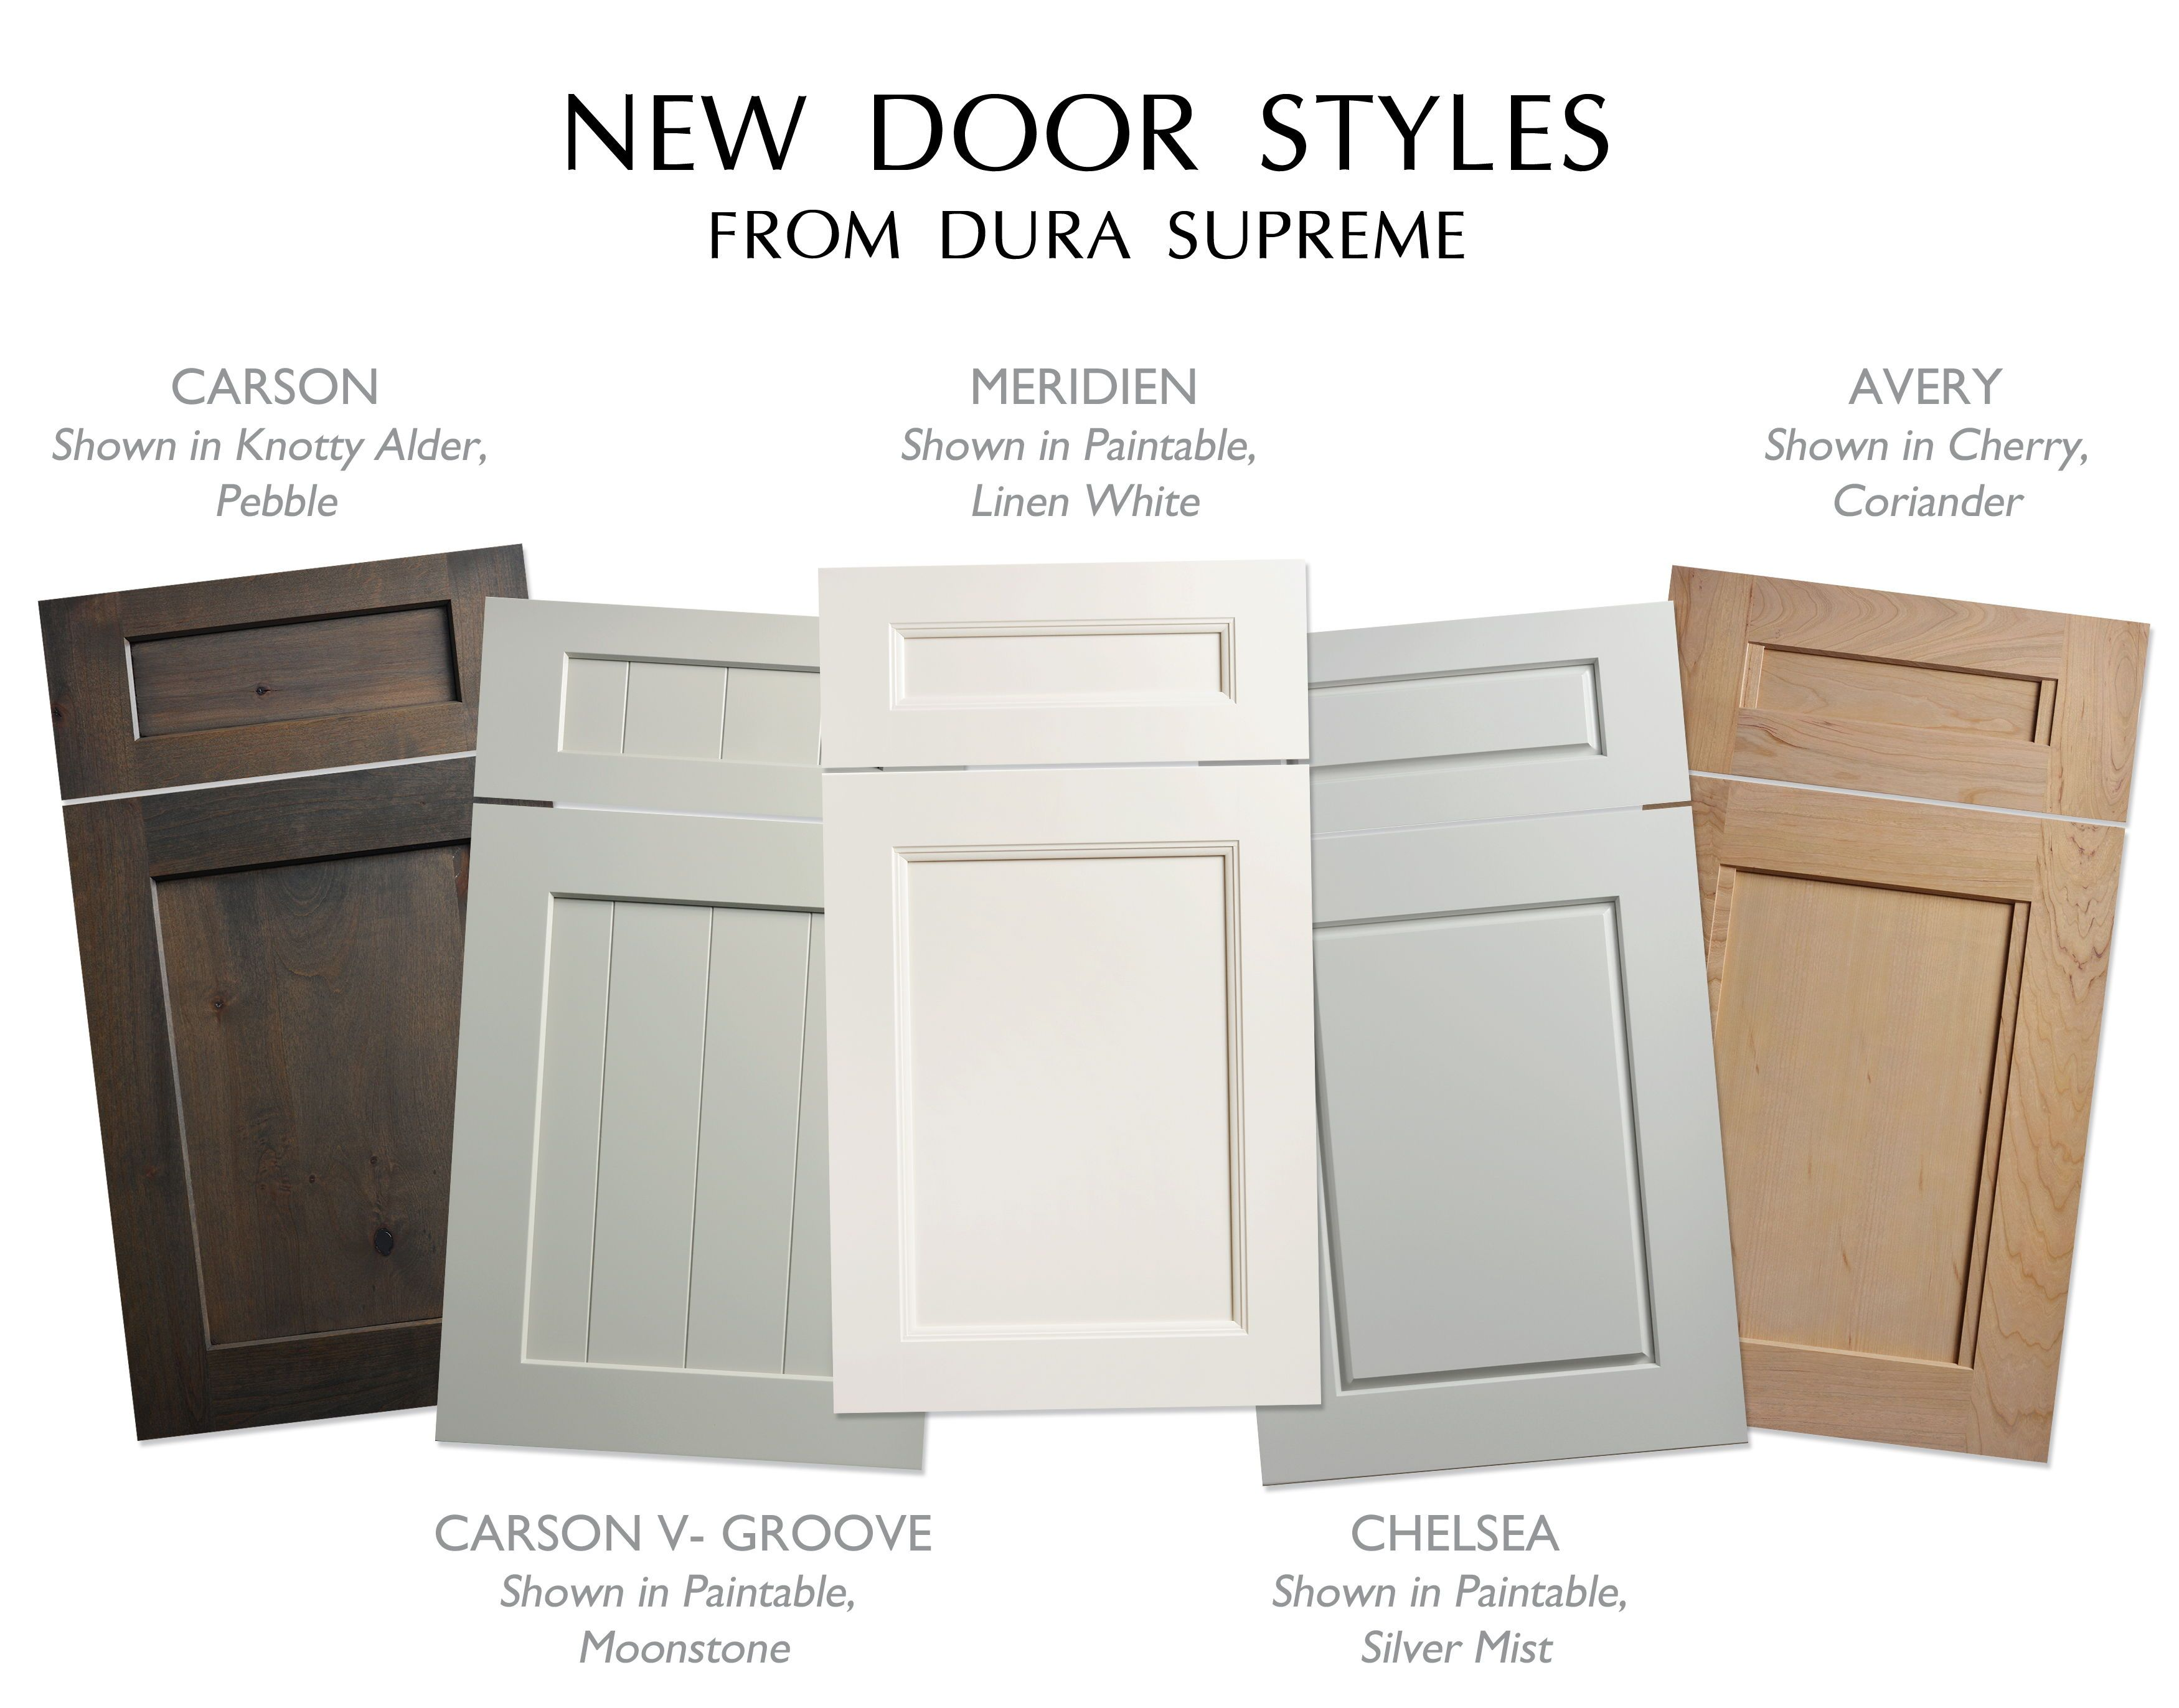 NEW Full Overlay Cabinet Door Styles From Dura Supreme Cabinetry: # Durasupreme #cabinetry #cabinets #cabinetdoor #cabinetdoorstyle #doorstyle  #cabinetstyle ...